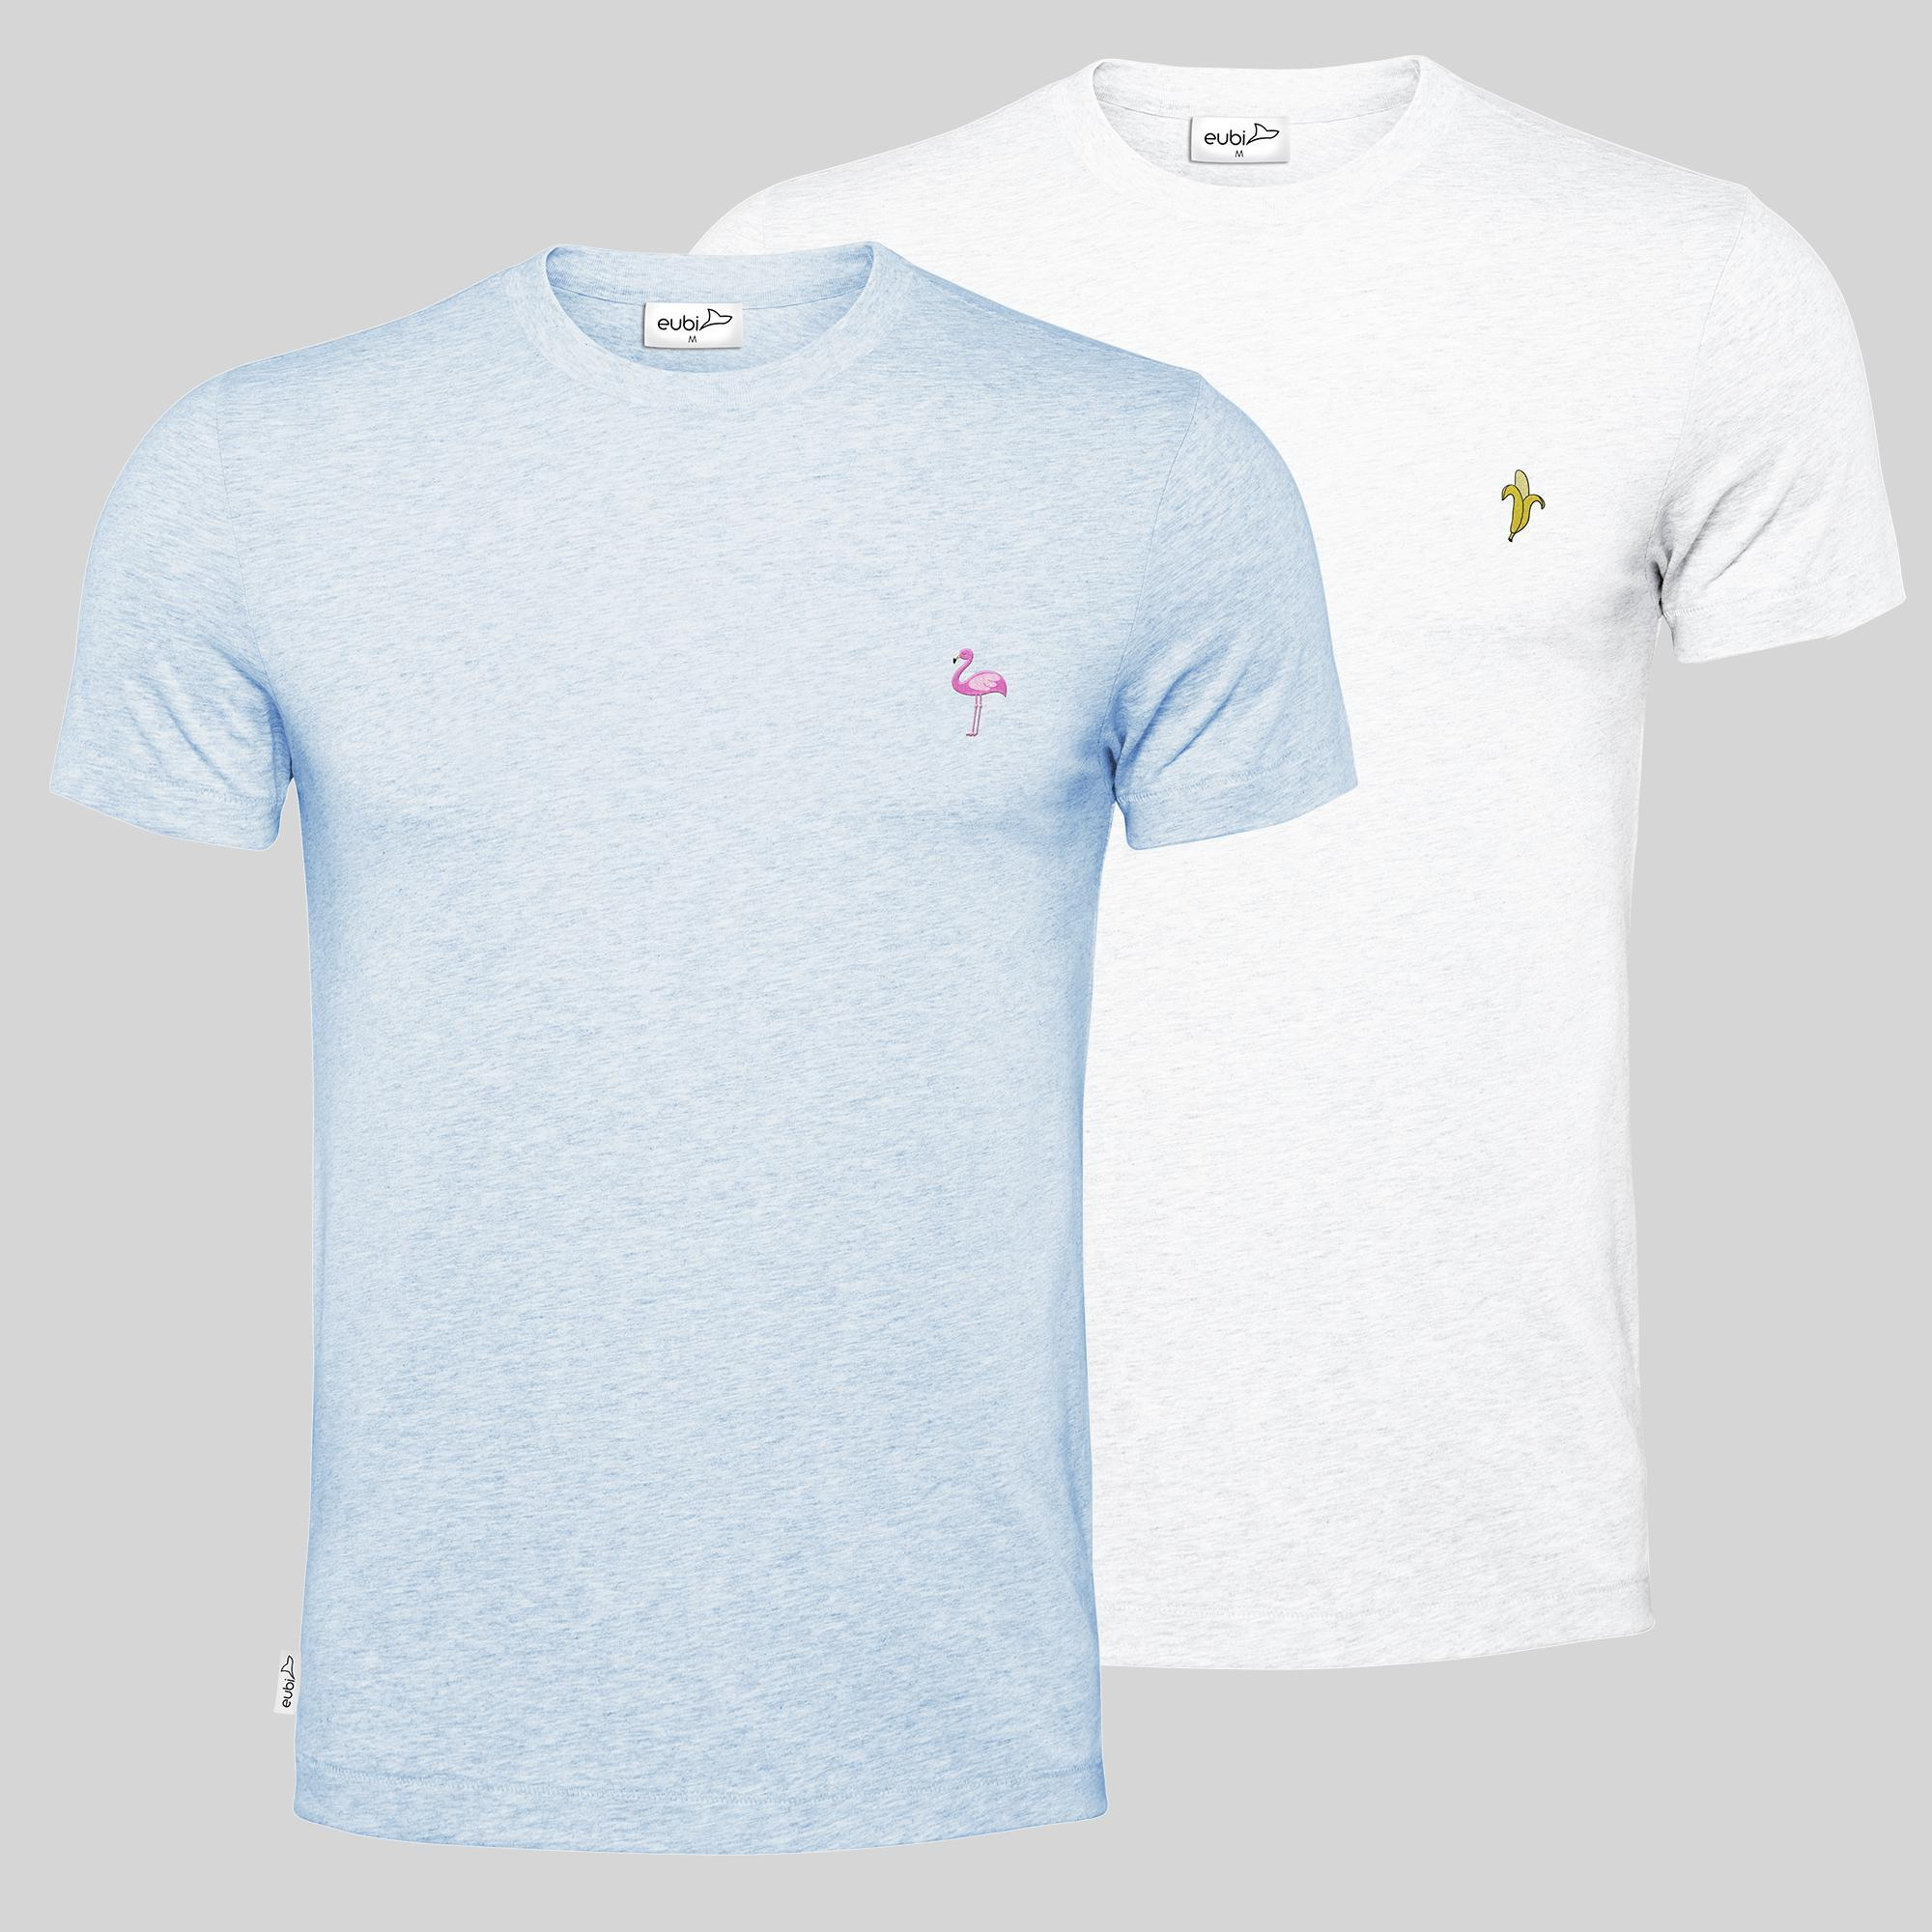 [SALE] Banana + Flamingo Signature T-Shirt Bundle